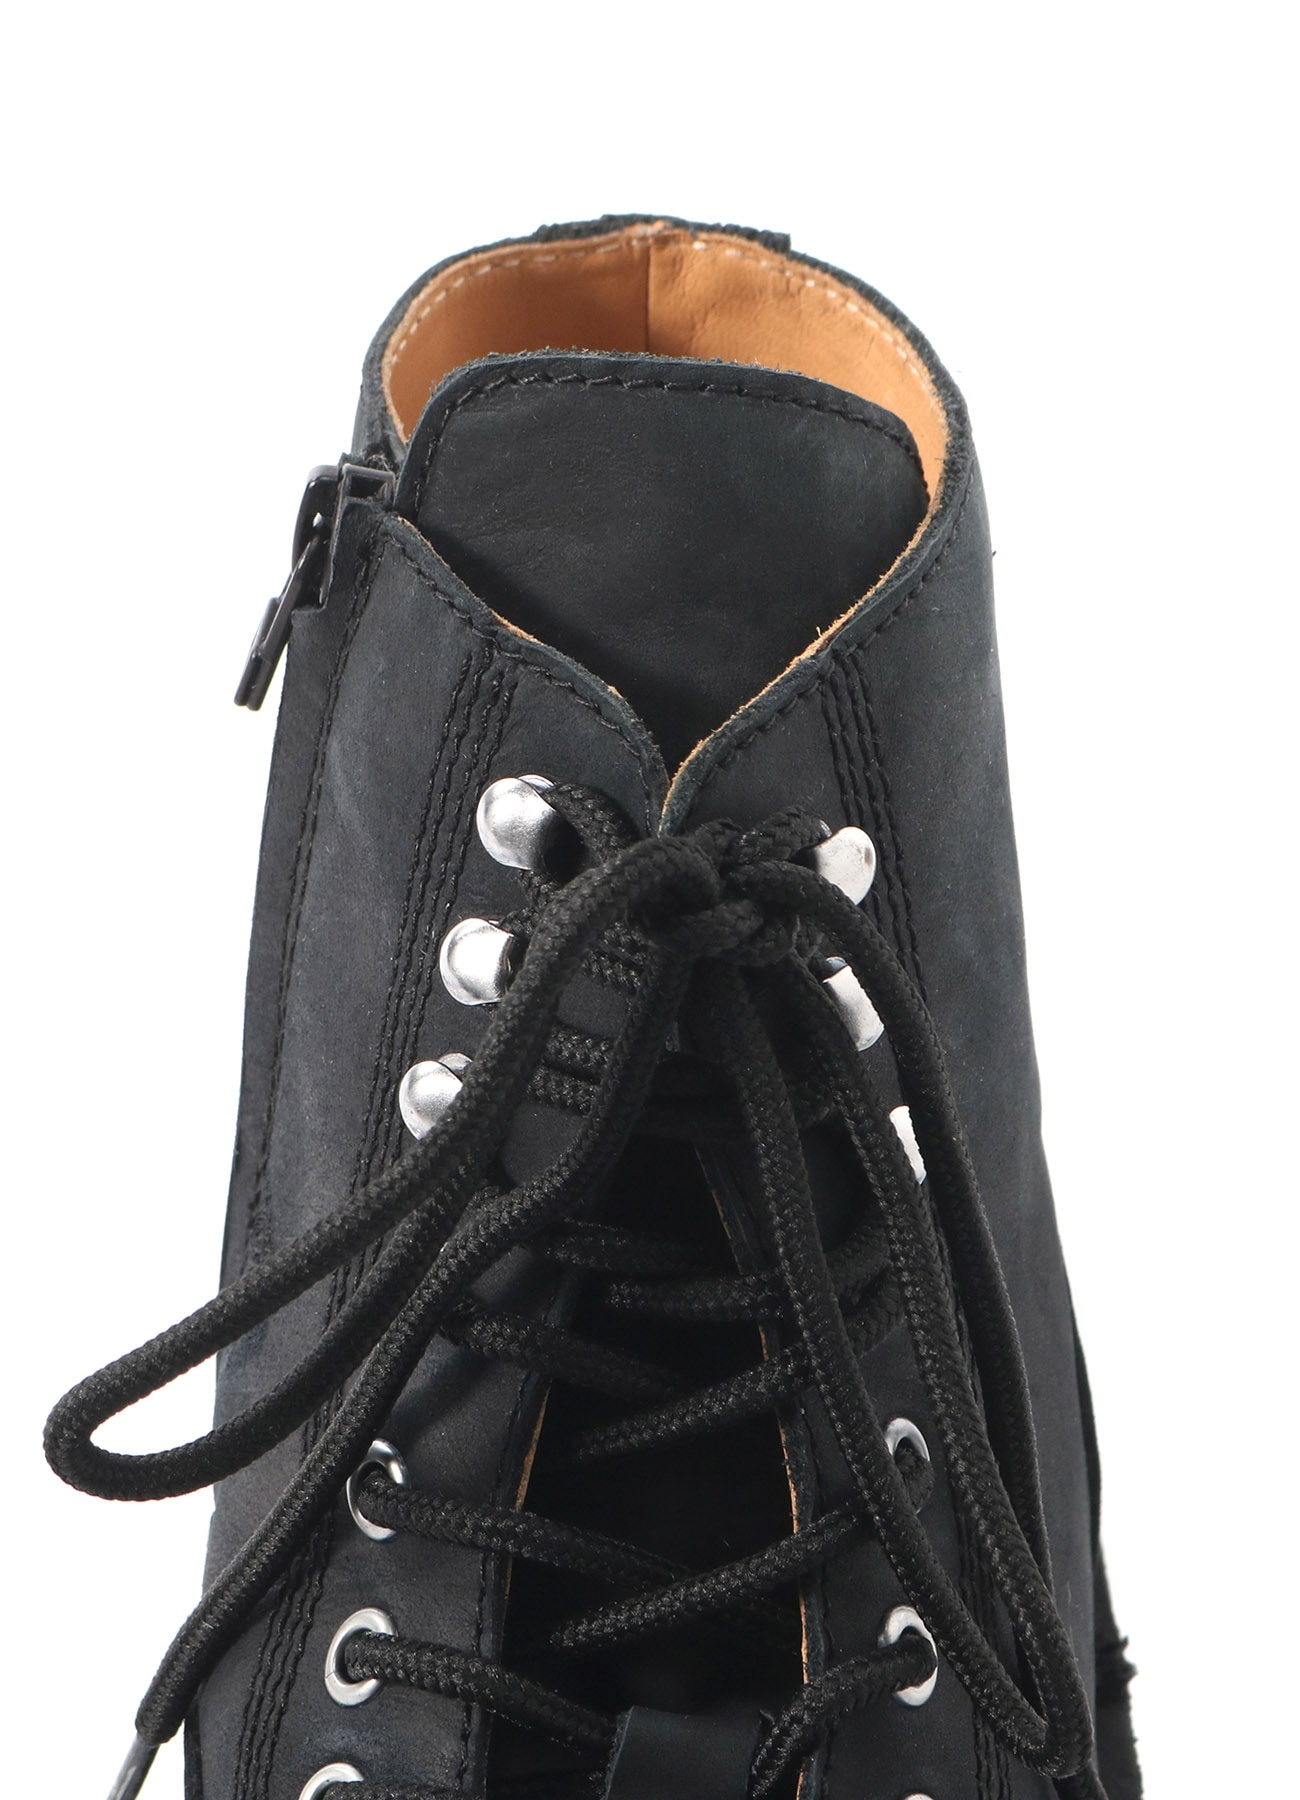 MAT SMOOTH LEATHER FASTENER BIKER'S BOOTS